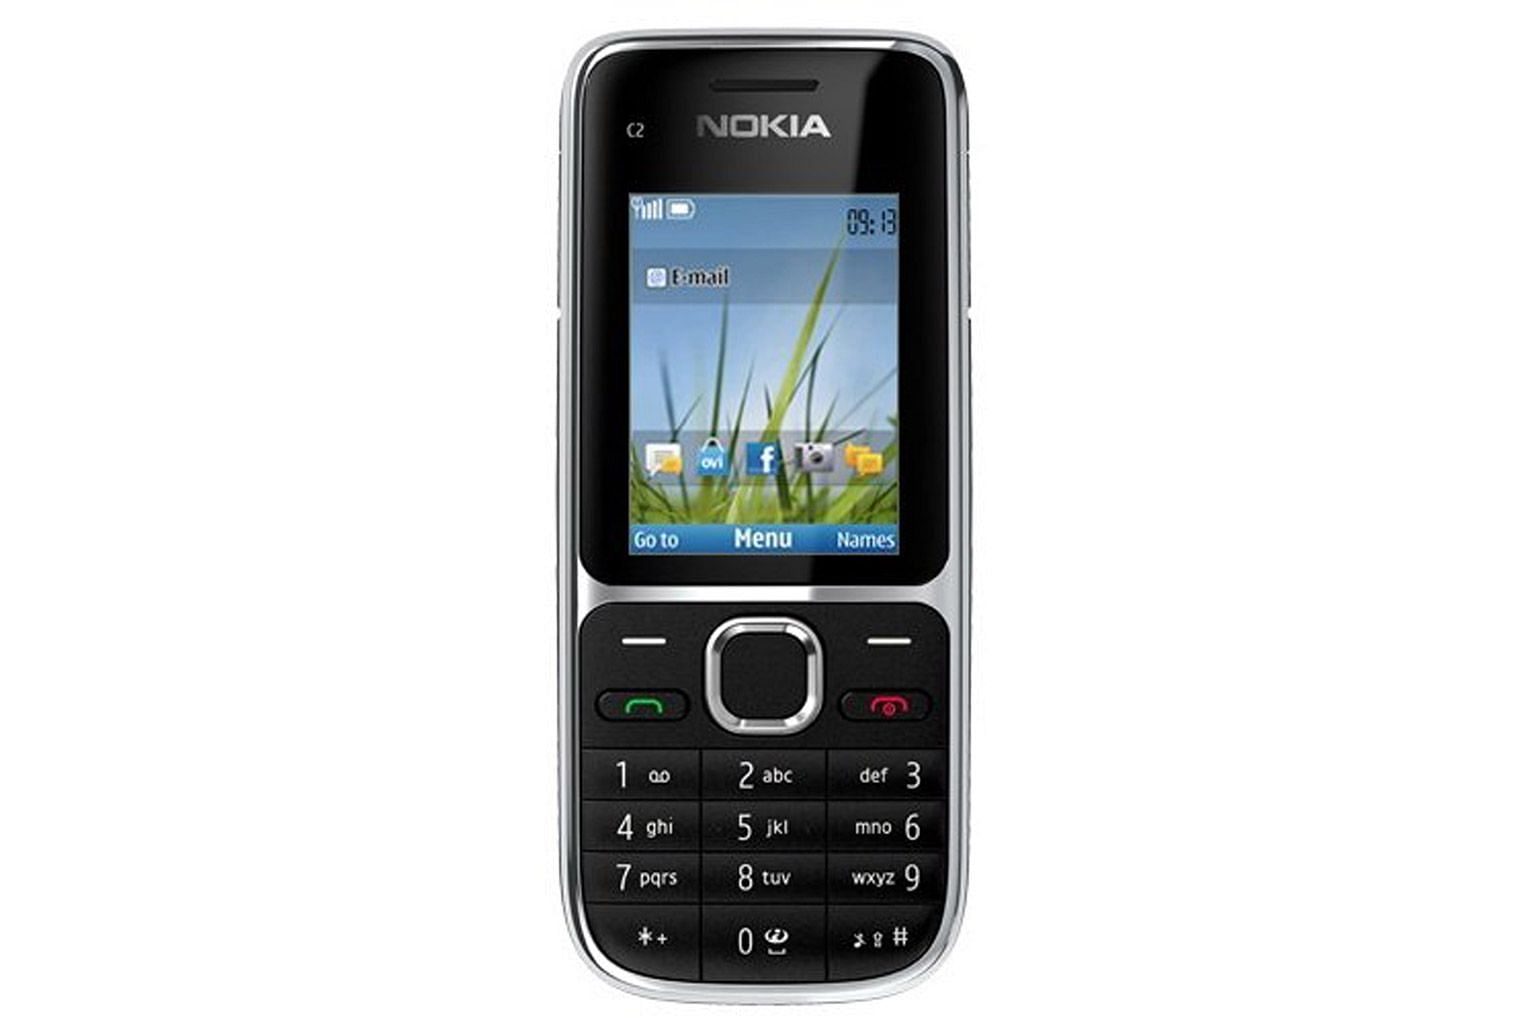 The Nokia C2-01 has Internet connectivity and you can also shoot videos with it.